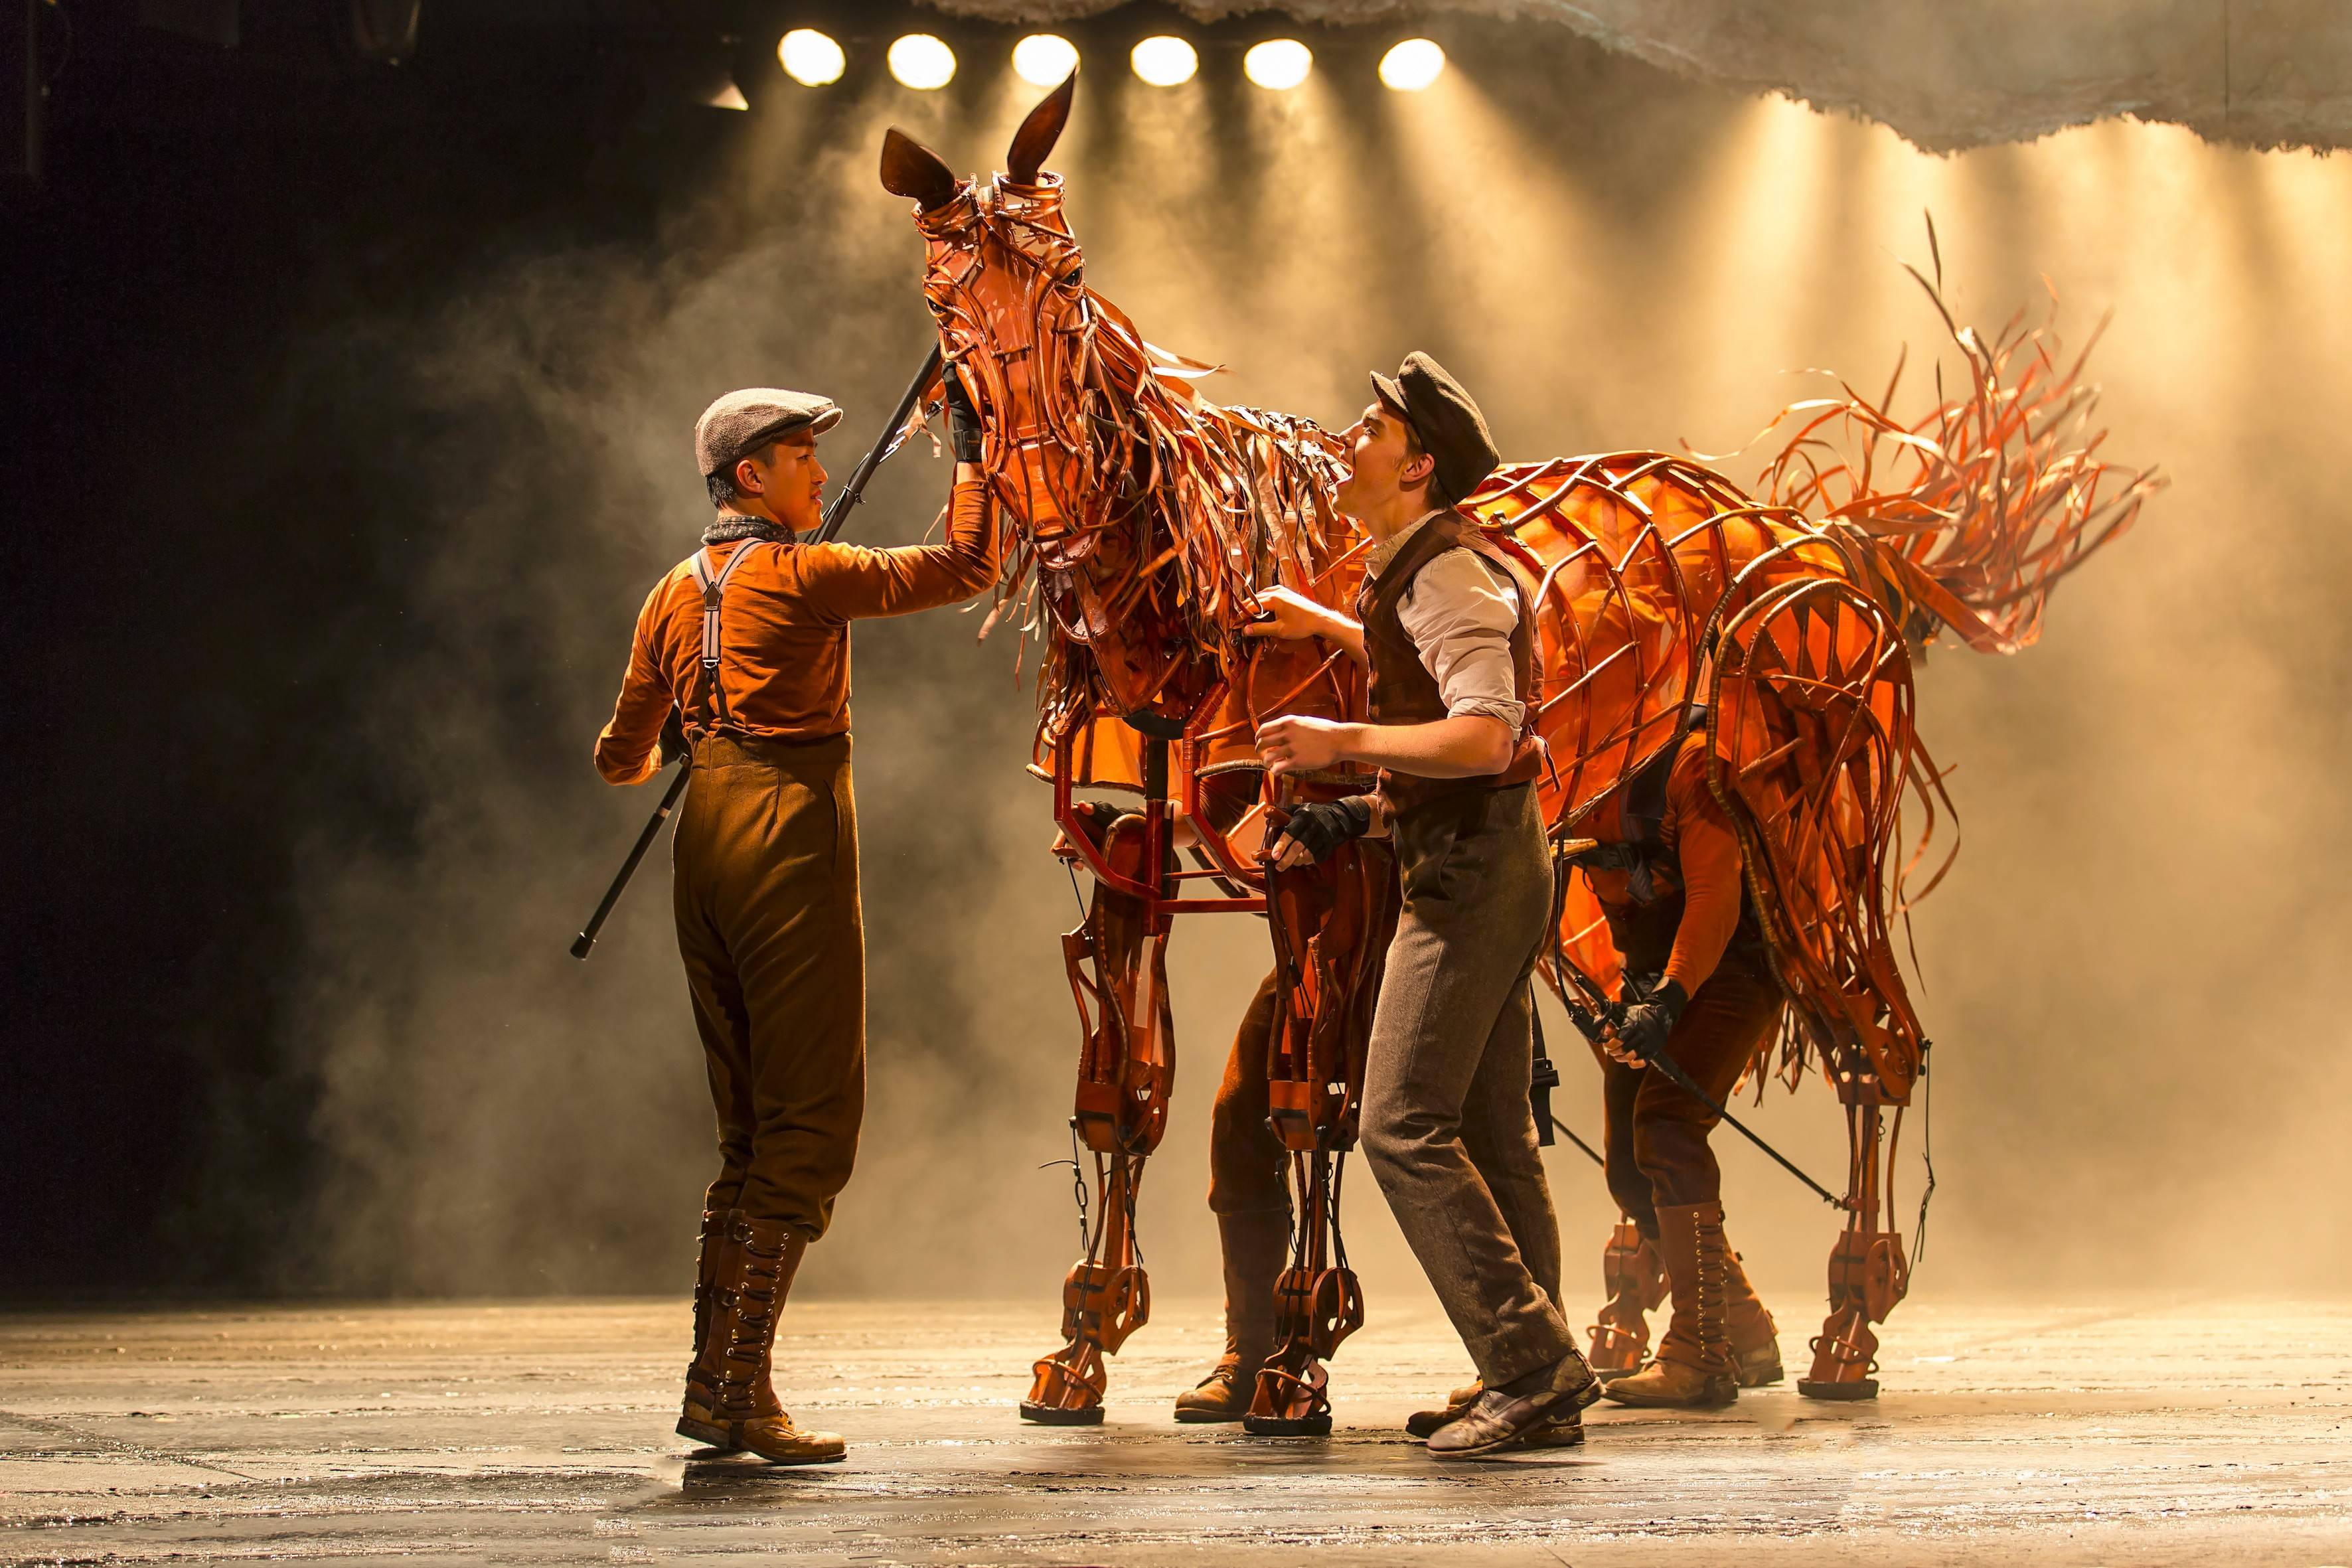 'War Horse' author marvels that 'modest' book became international stage play